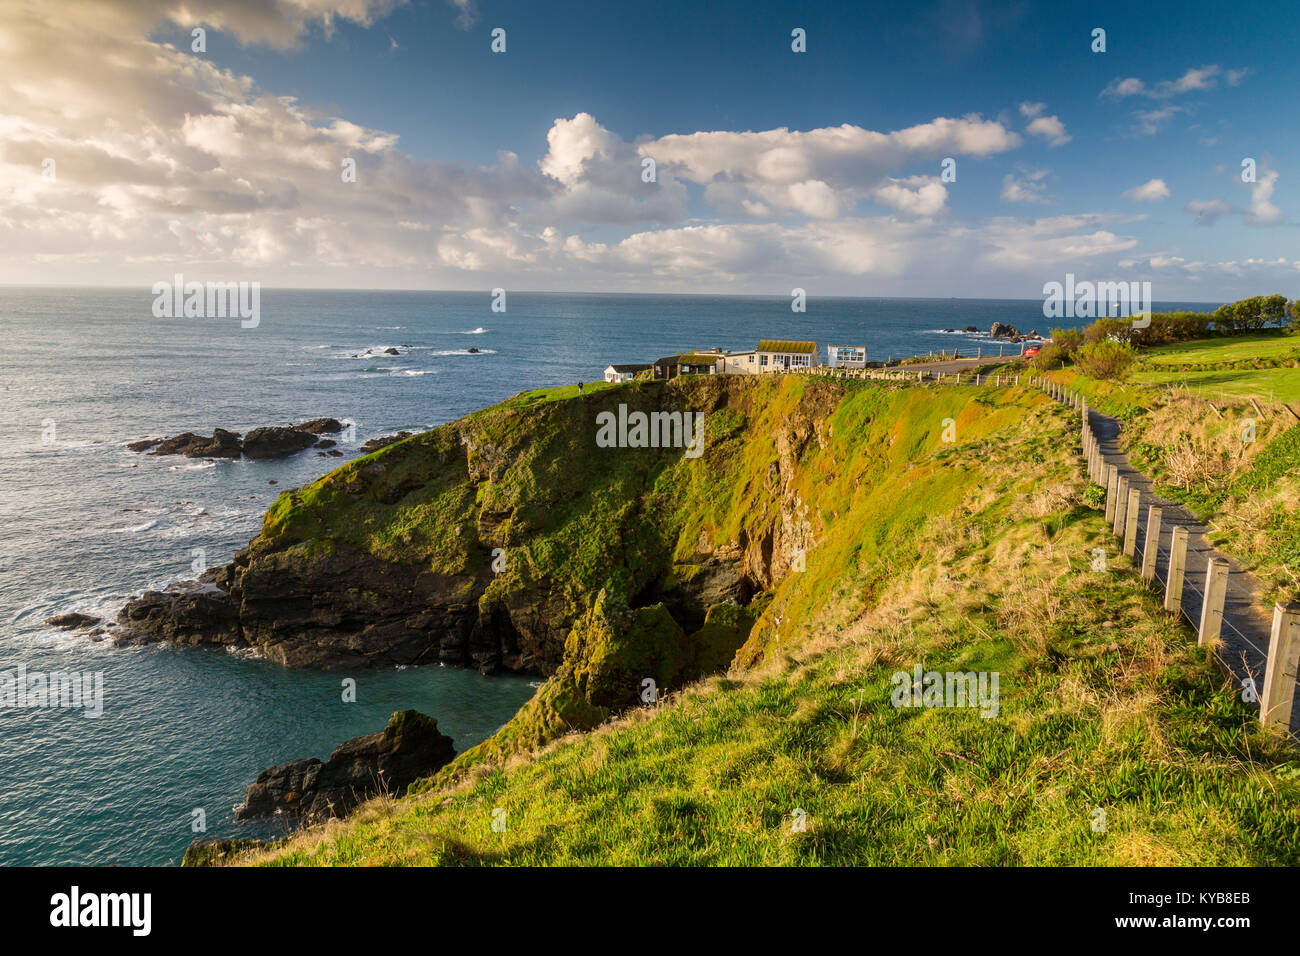 The South West Coast long distance footpath follows the cliffs close to Lizard Point in winter sunshine, Cornwall, Stock Photo